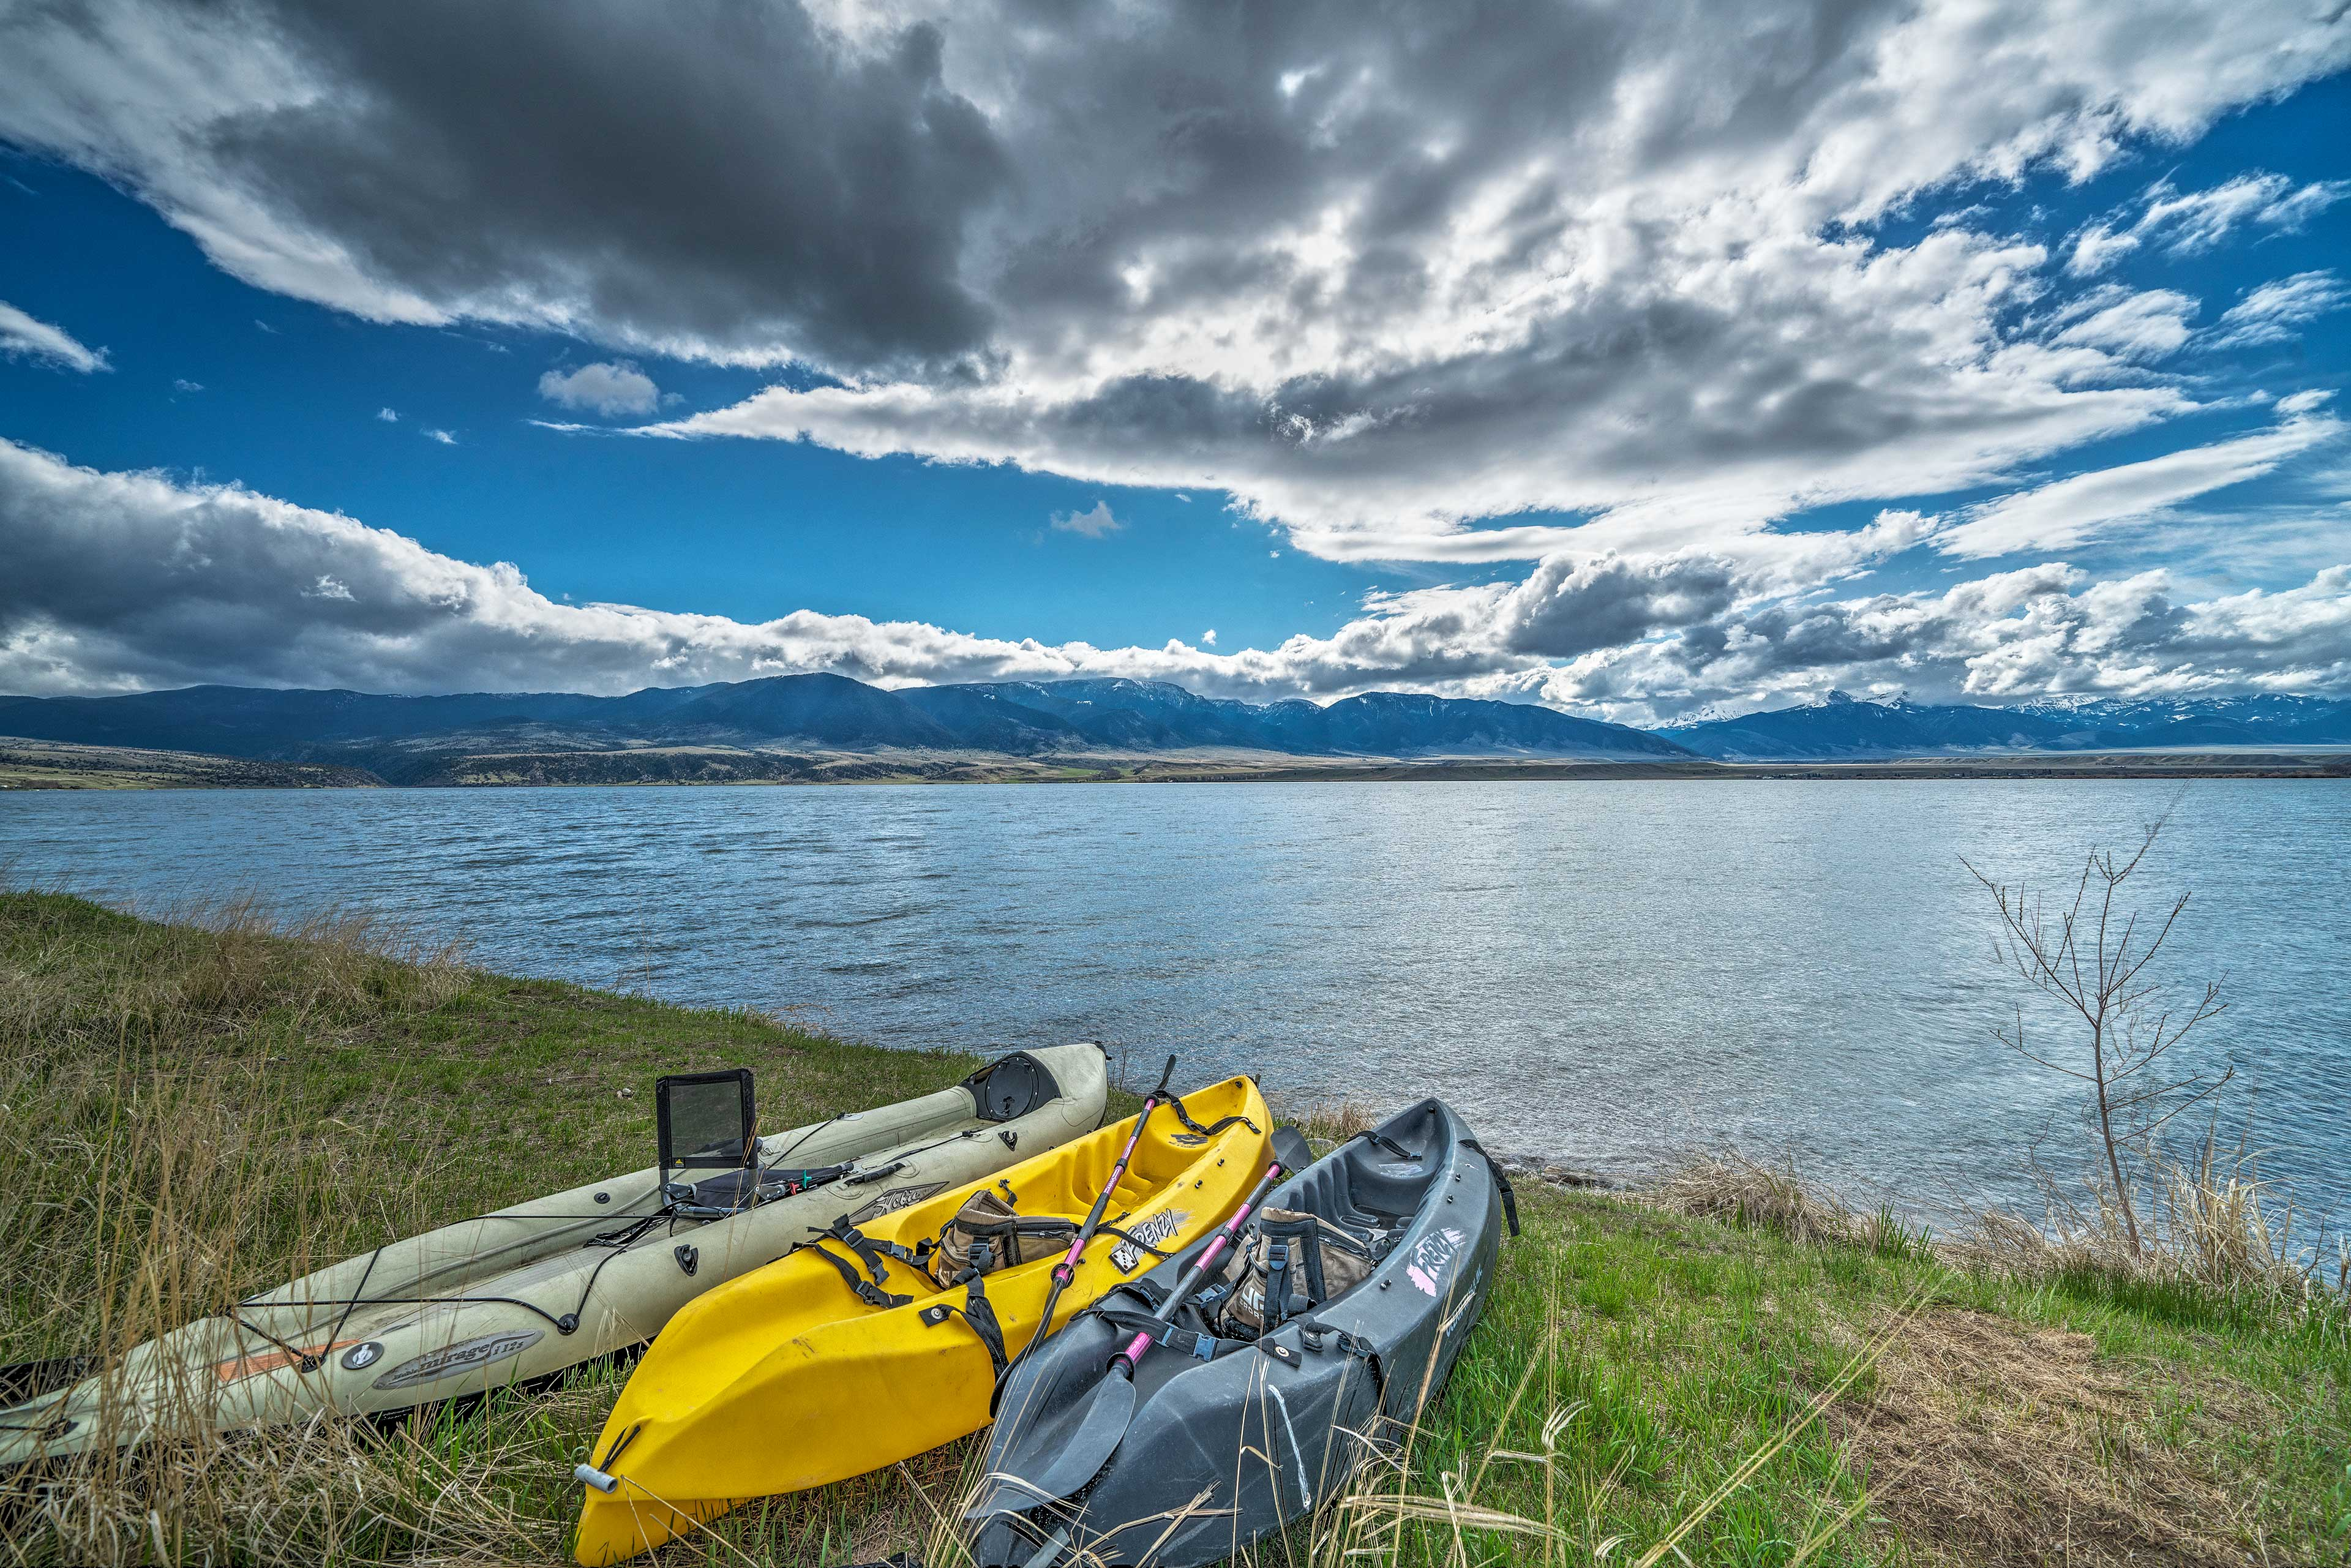 Spend your days marveling at mountain views and kayaking on Ennis Lake's shore.